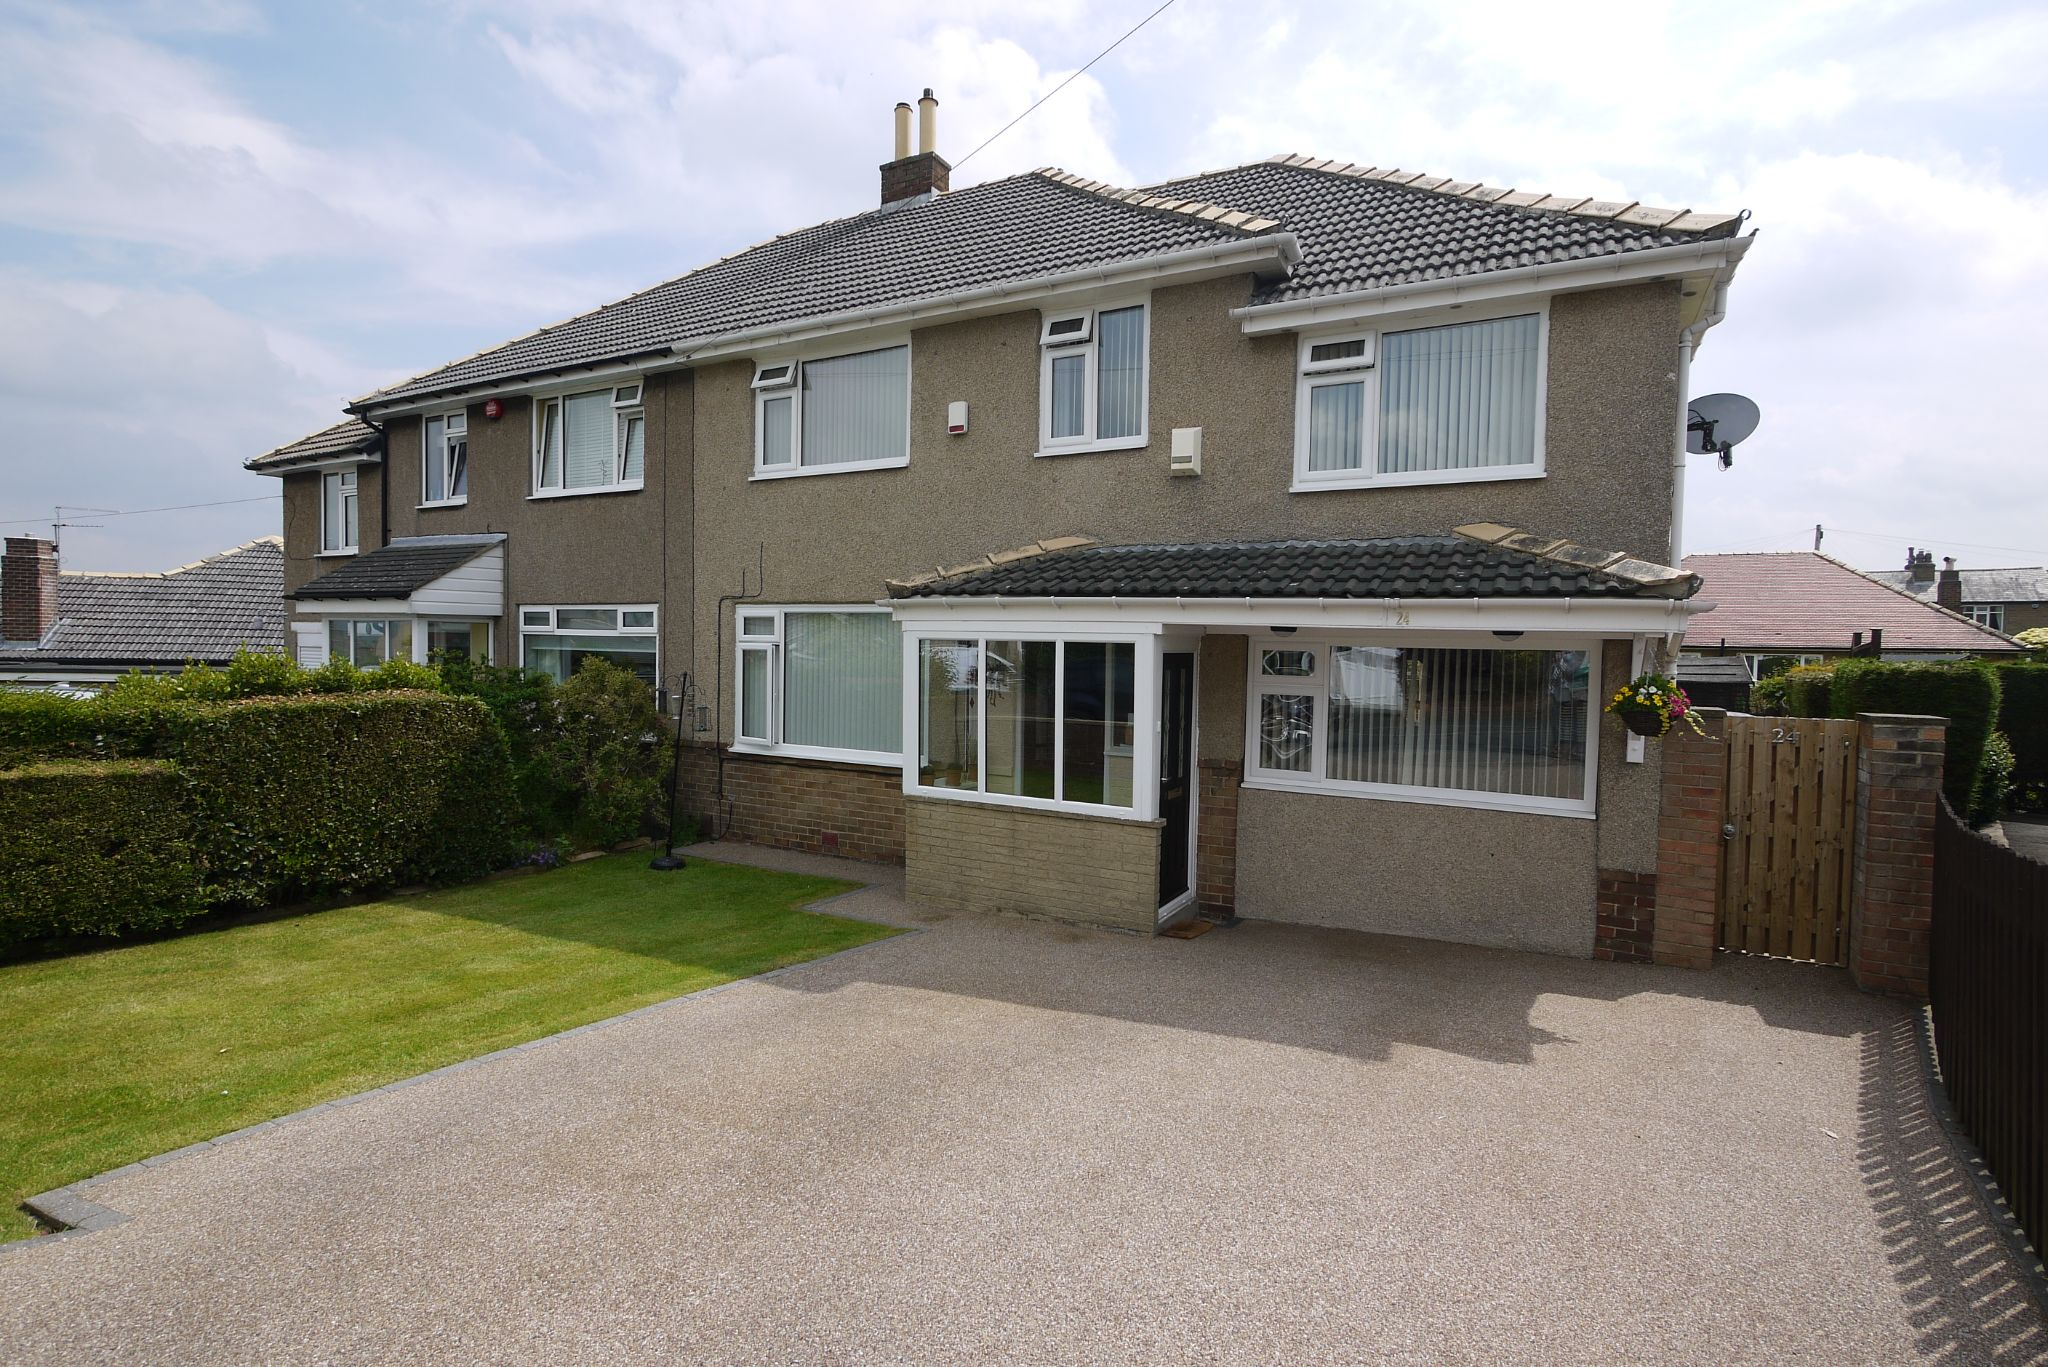 4 bedroom semi-detached house Sold in Brighouse - Photograph 1.